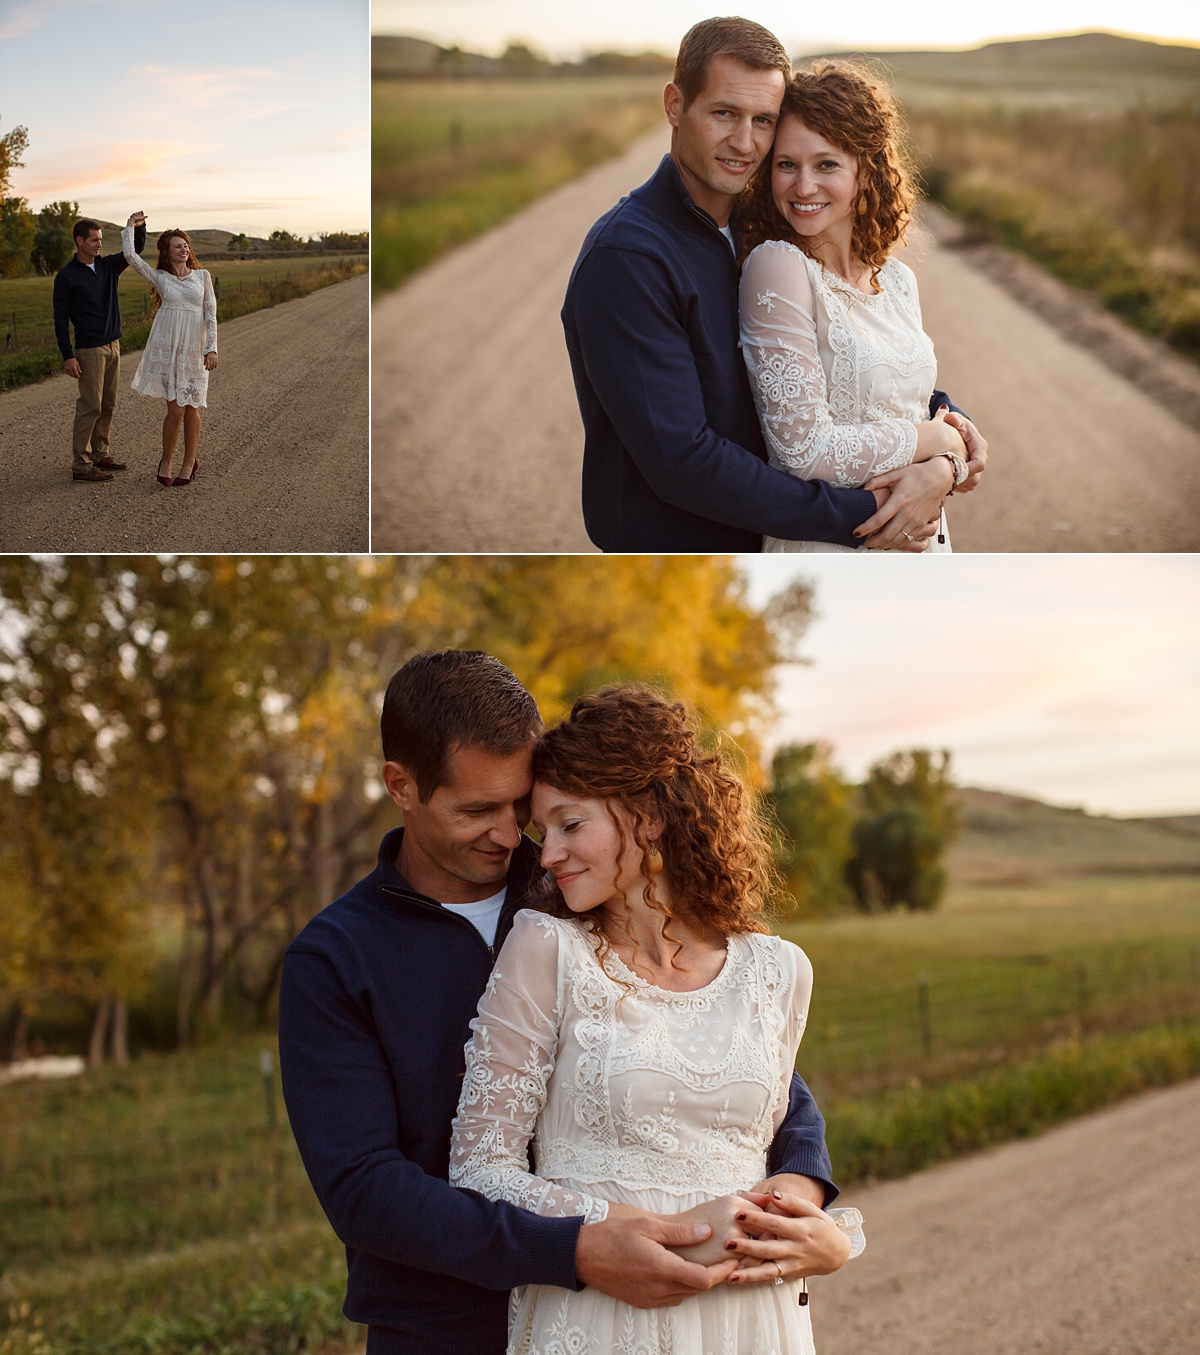 Lake_Wilson_Engagement_Session_0008.JPG